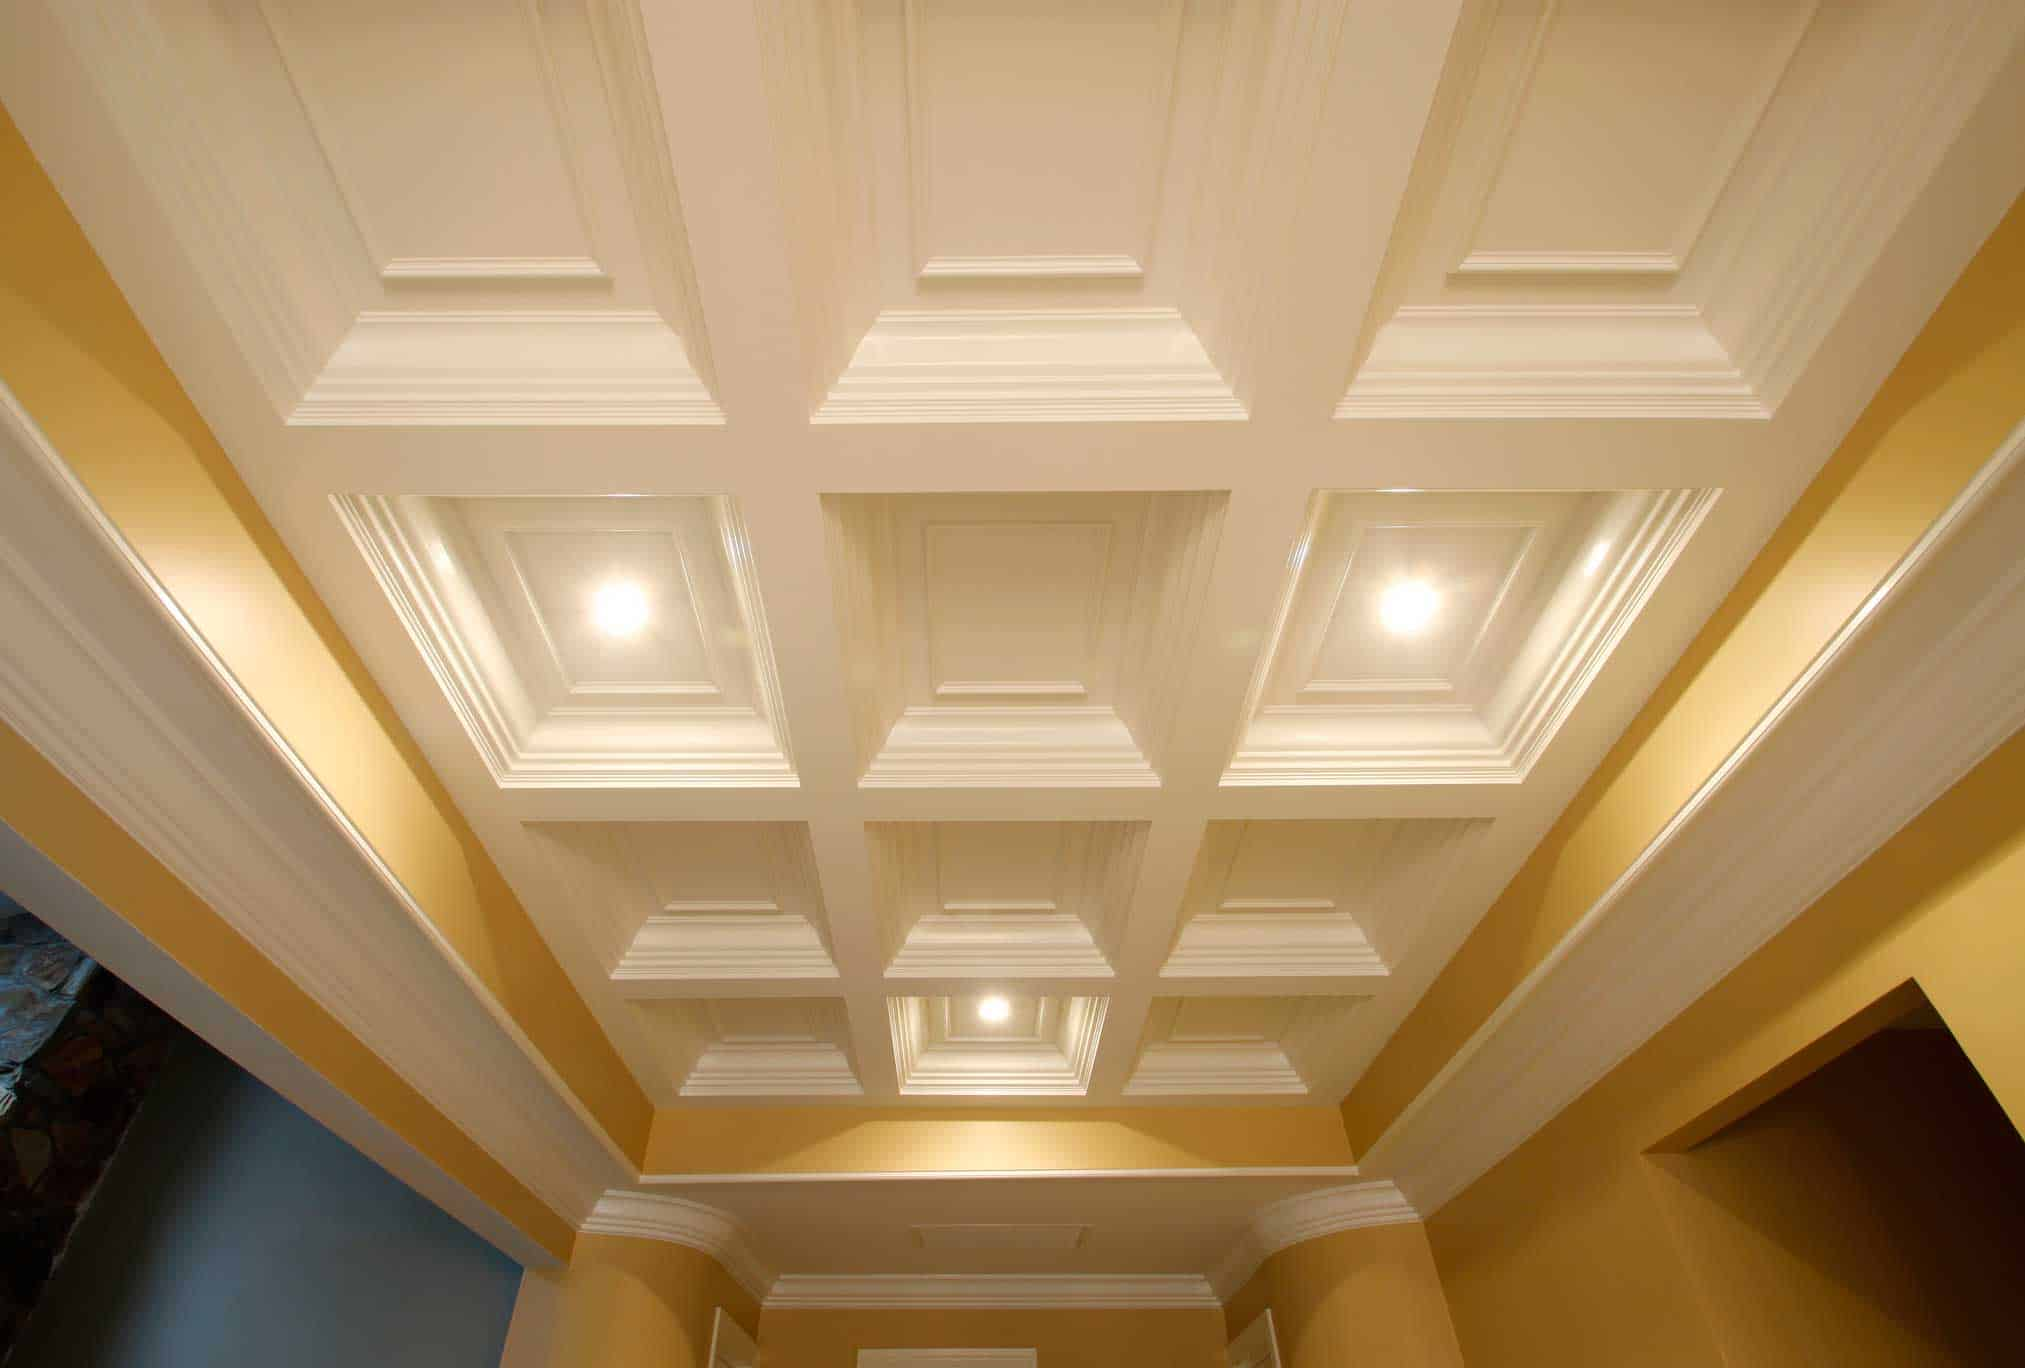 Coffered ceilings fanatic quotes for Coffered ceiling styles